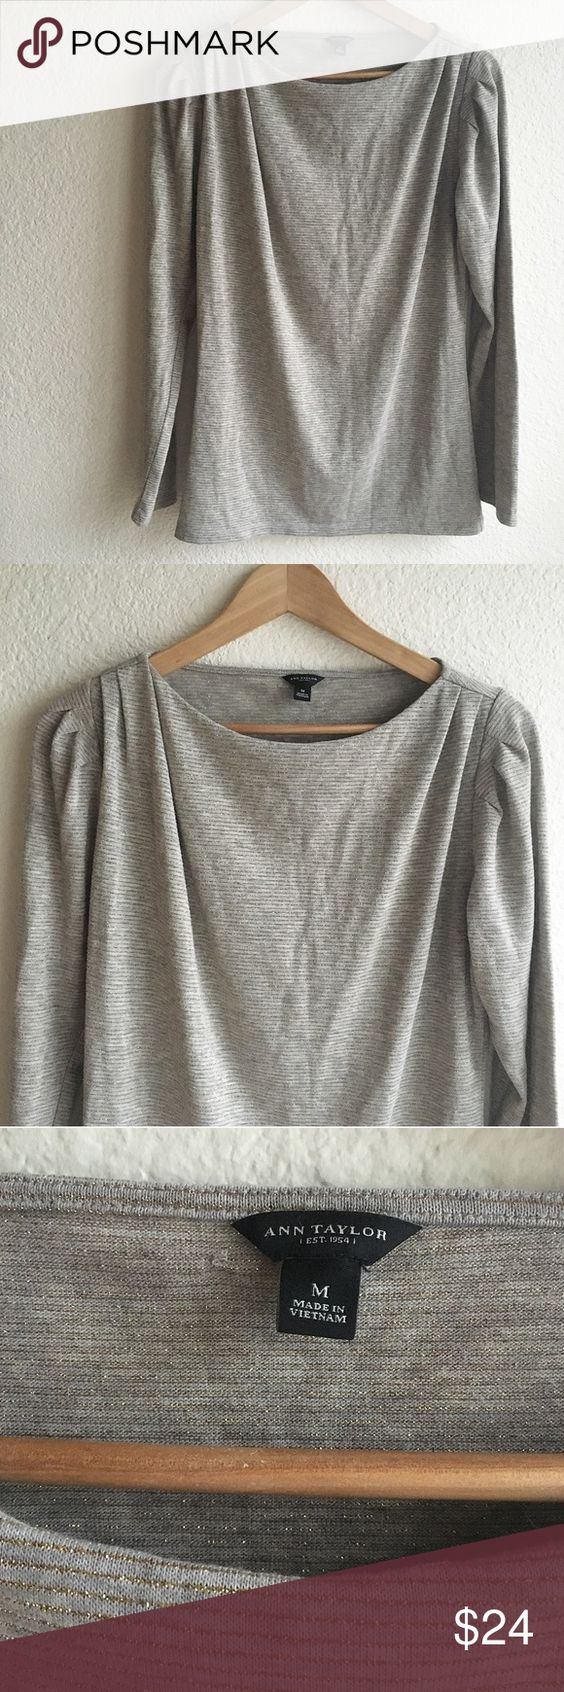 Ann Taylor long sleeve shirt Great conditions, cute design Ann Taylor Tops Blouses